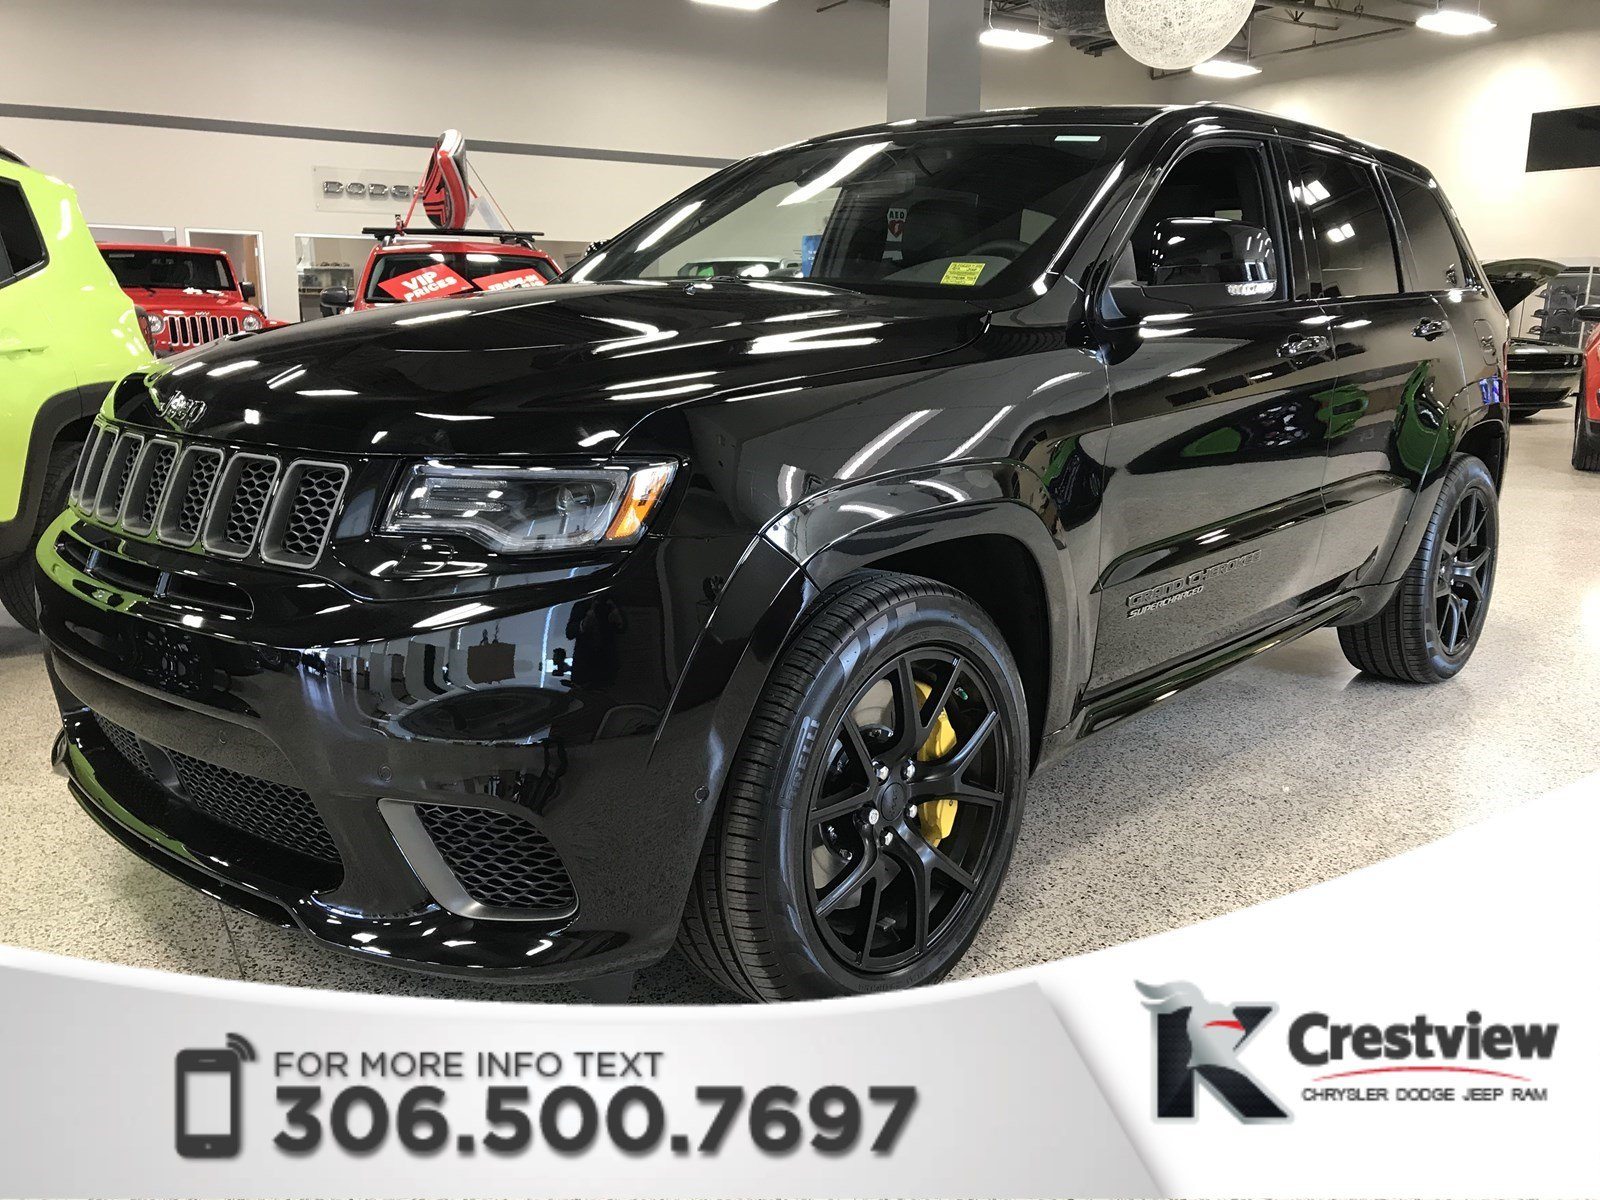 certified used 2018 jeep grand cherokee trackhawk | 707 hp